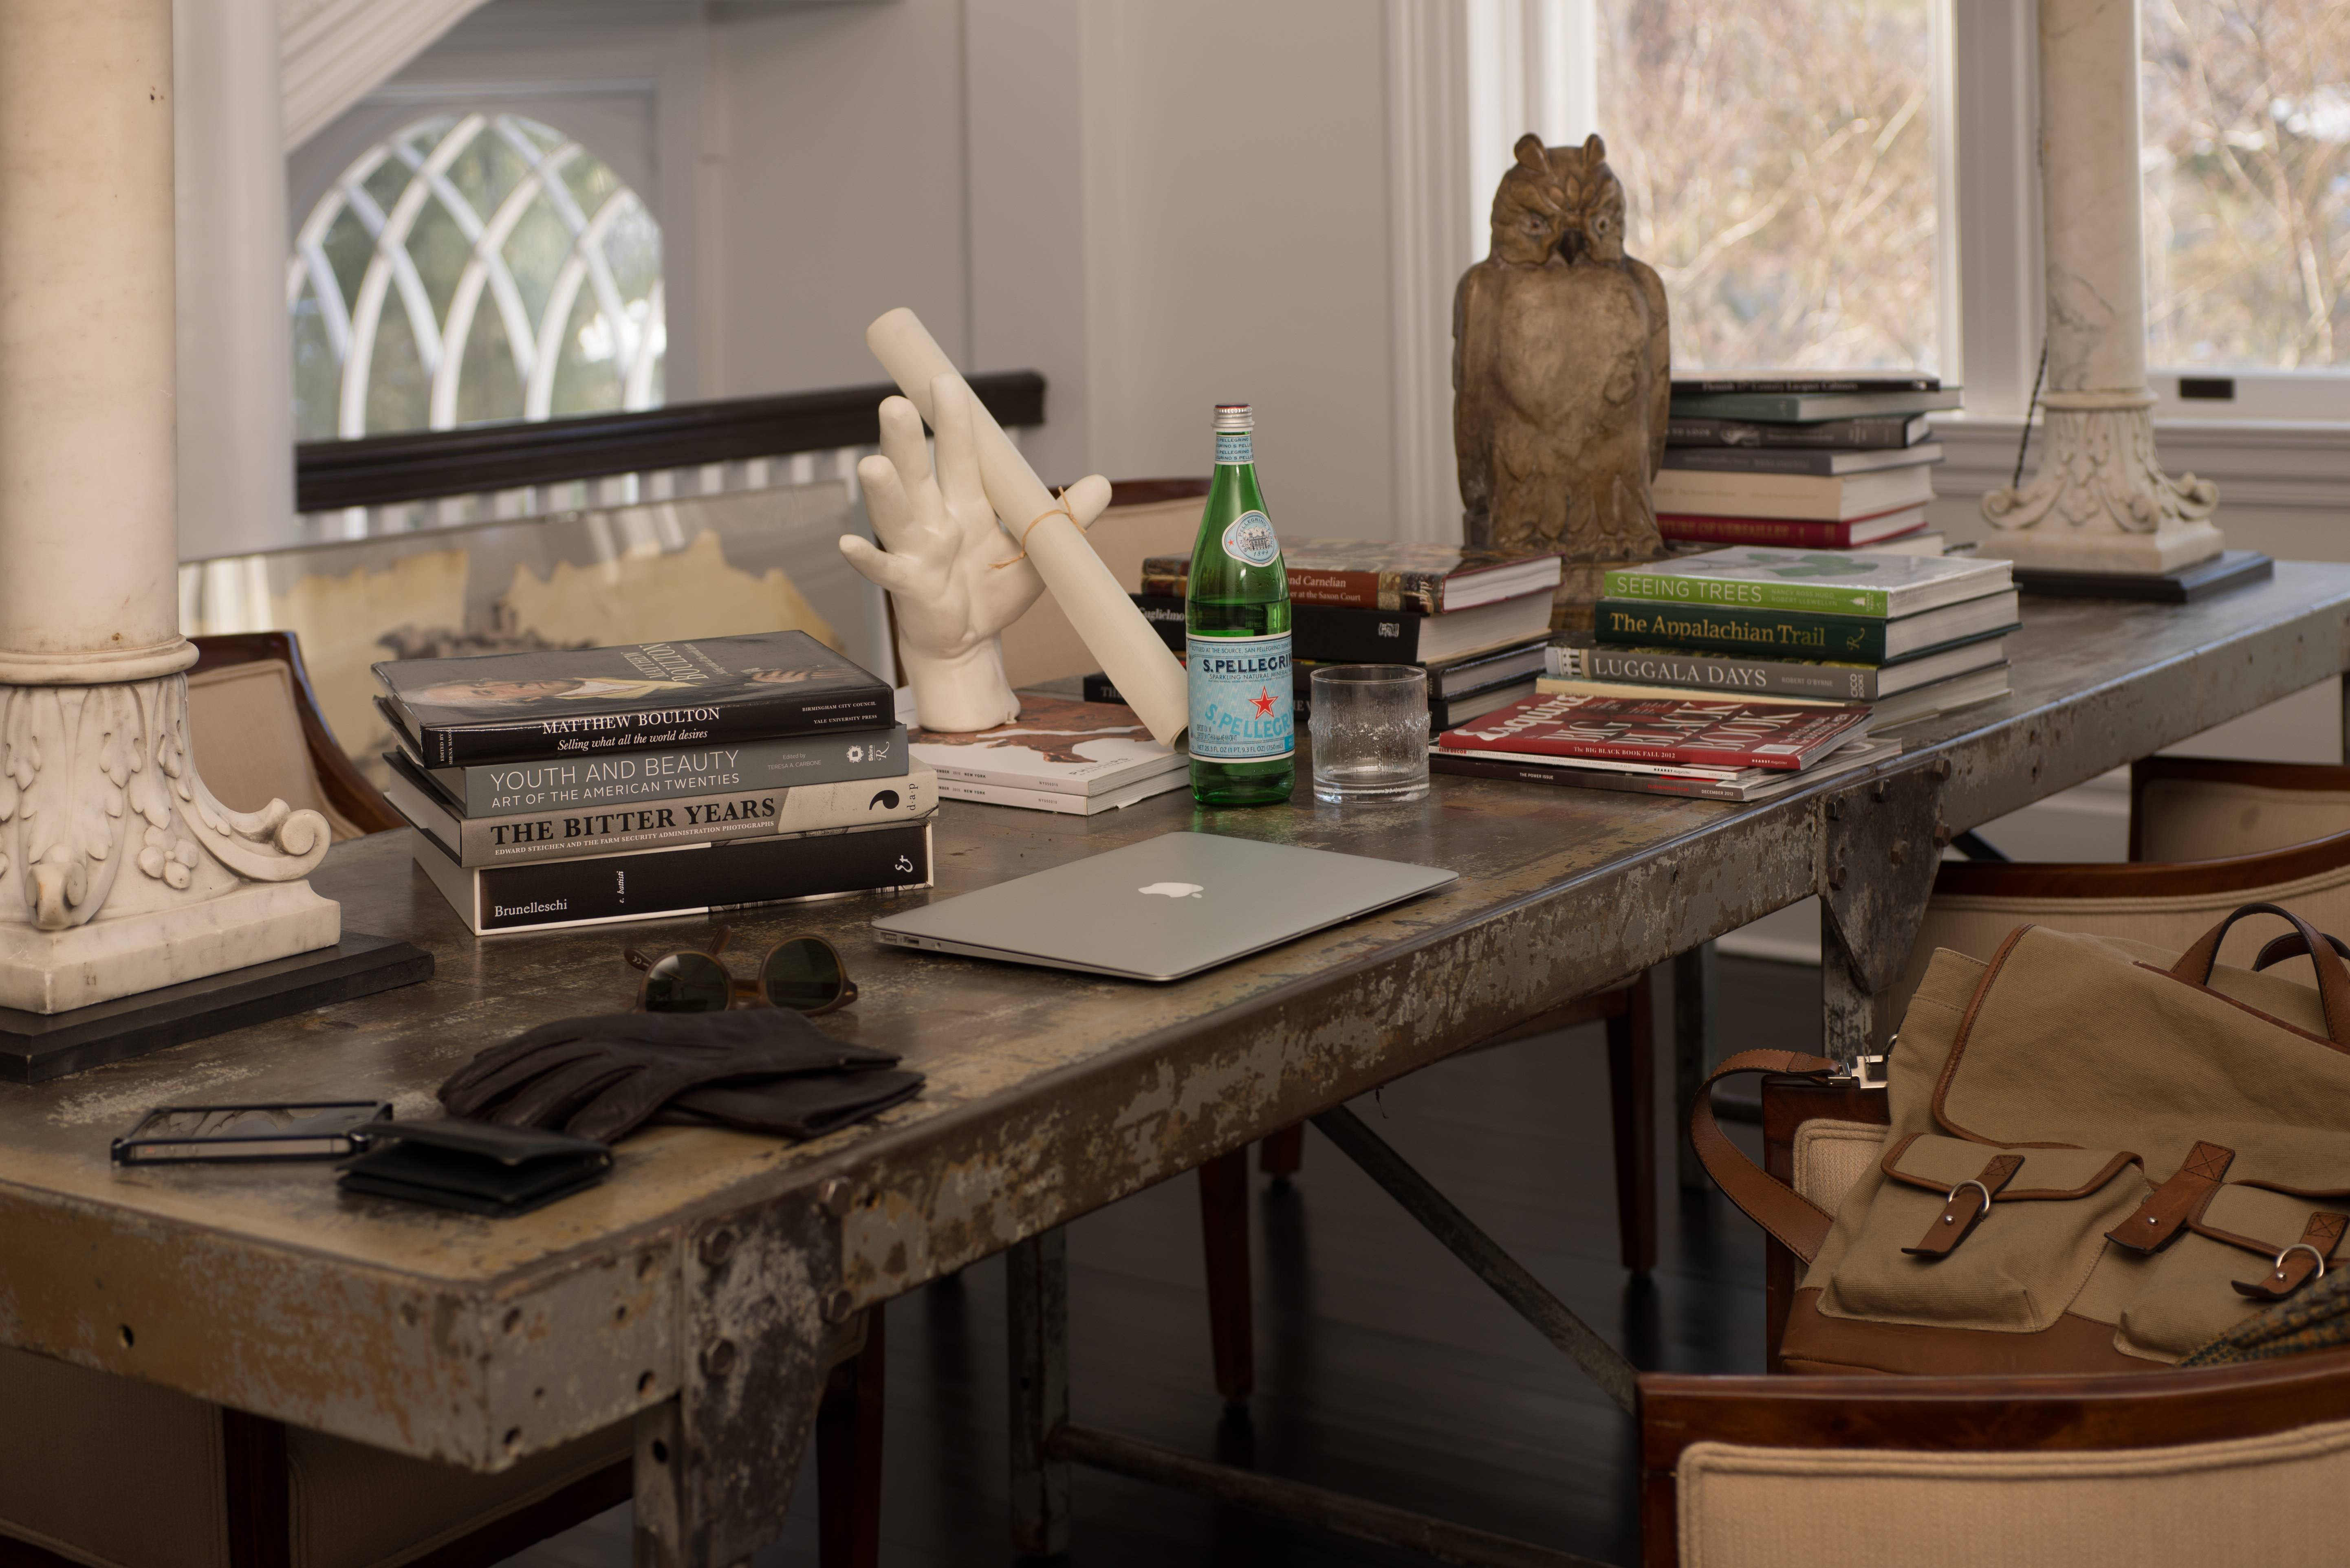 Photograph of Michael Bruno's Desk at His Home Office